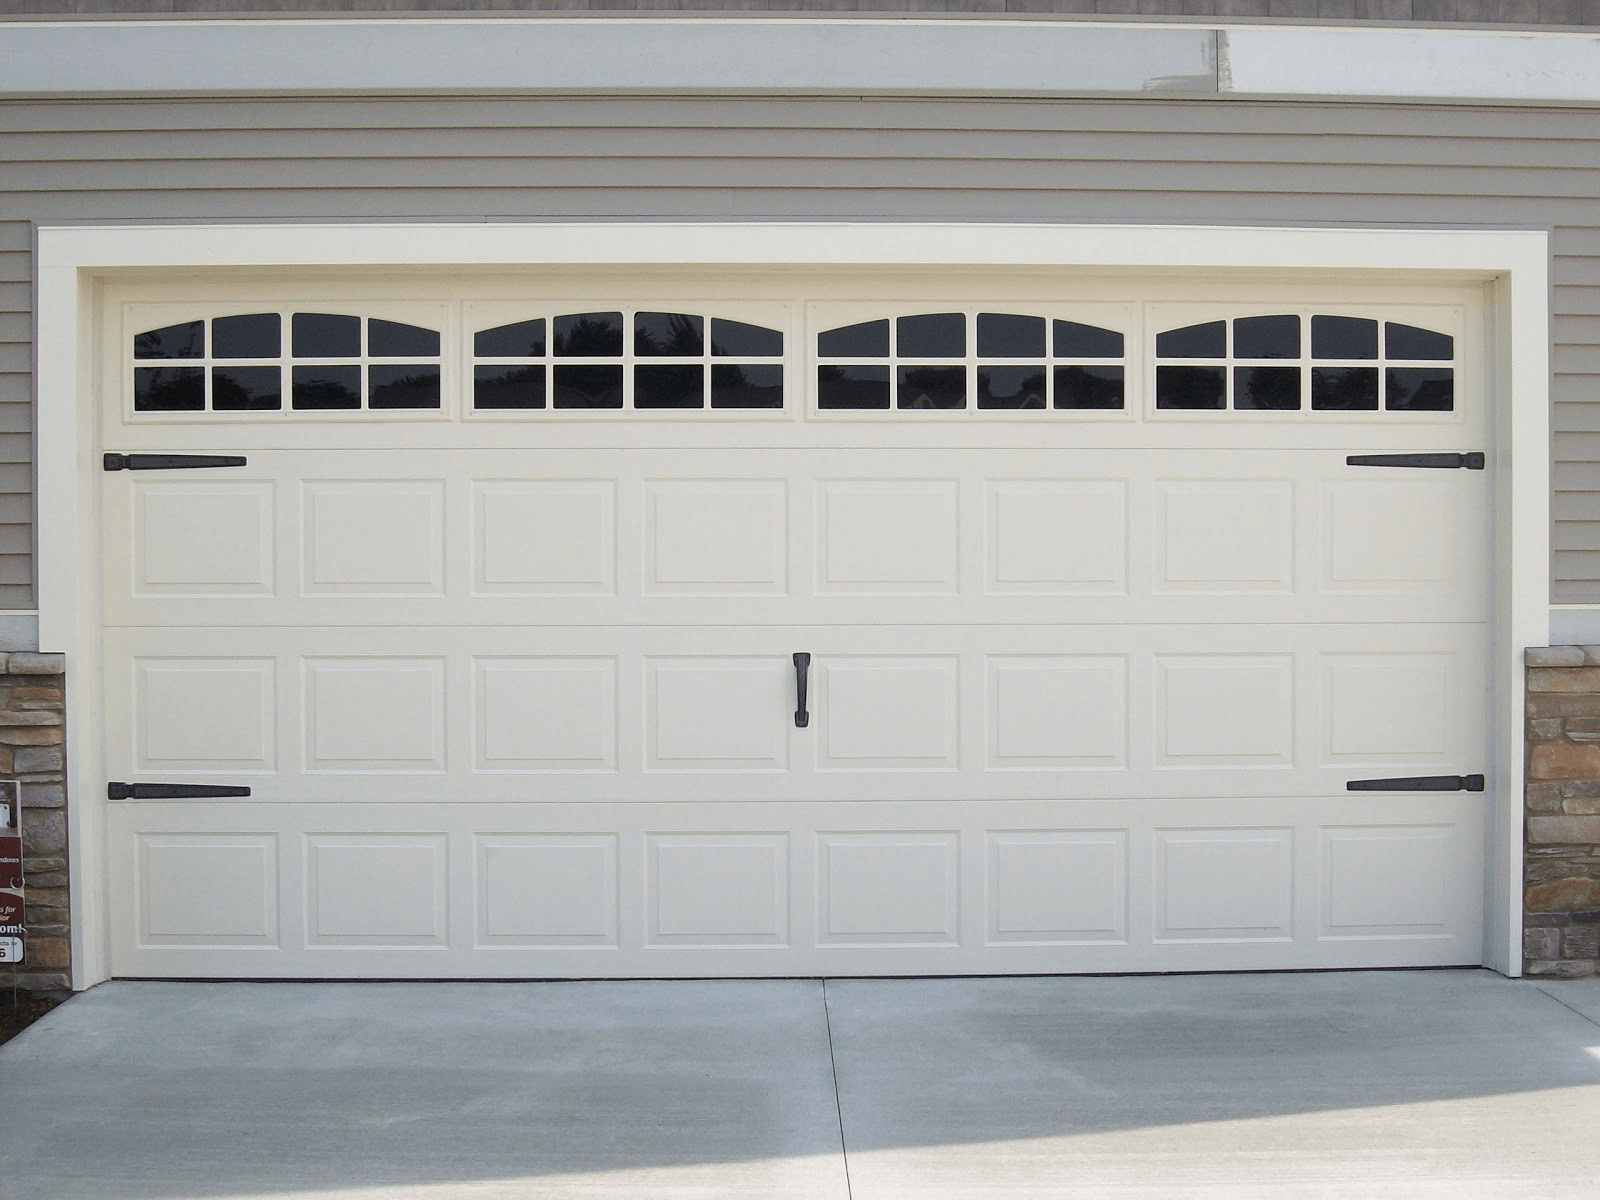 Garage Doors Design Options: Garage Door Designs With Windows